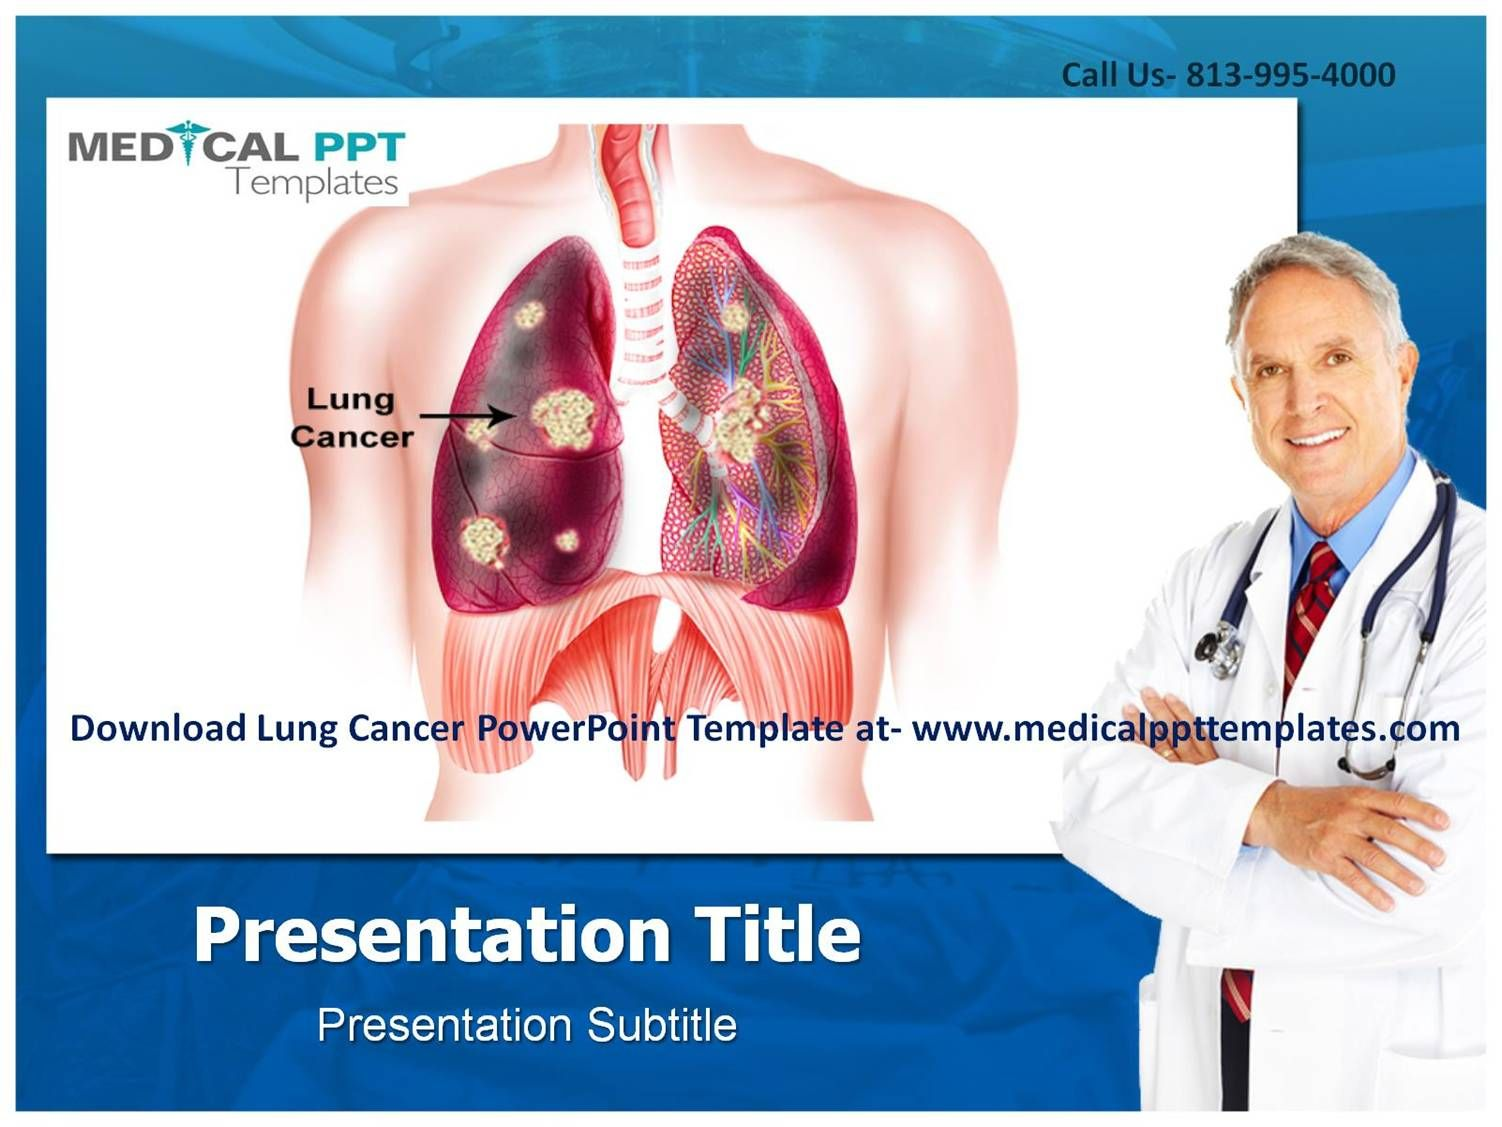 Download lung cancer powerpoint template cancer templates download lung cancer powerpoint template toneelgroepblik